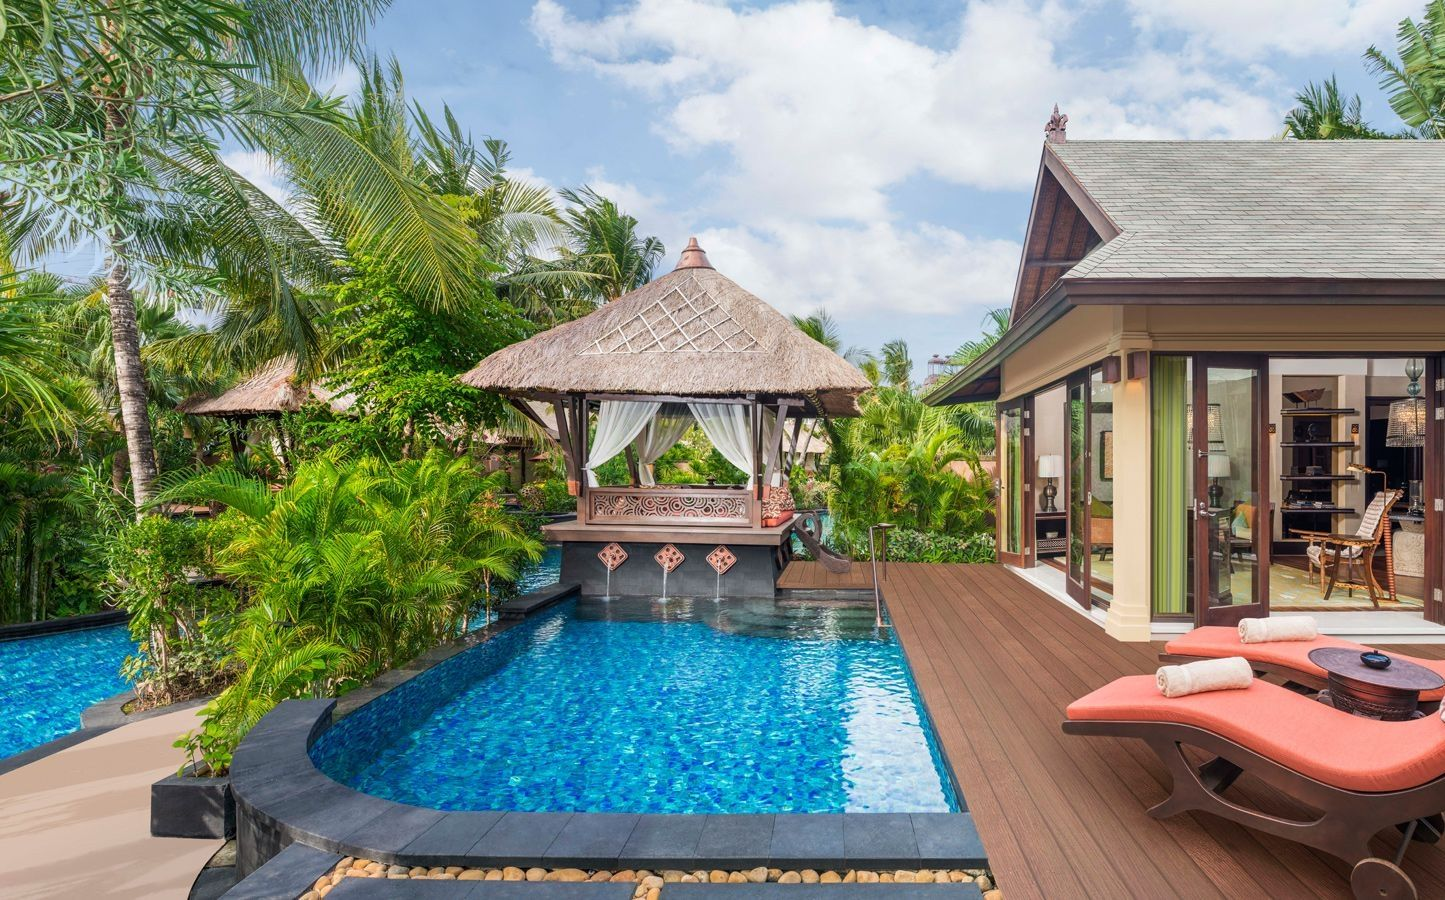 bali villa lagoon villa one bedroom st regis bali resort and